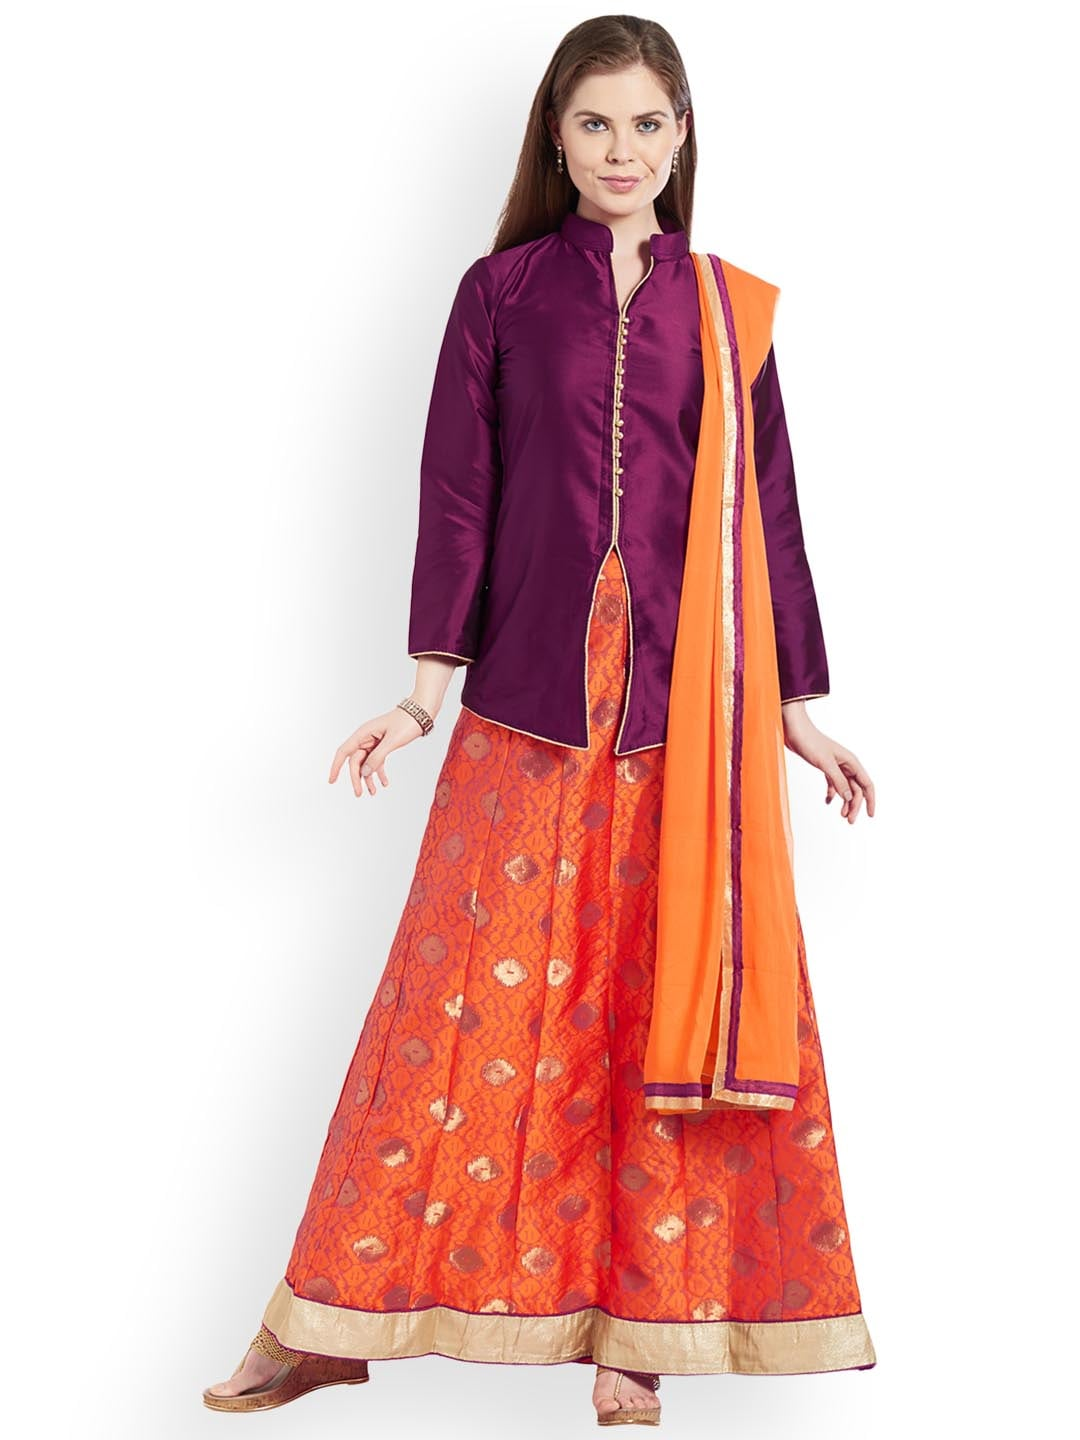 Viva N Diva Purple & Orange Solid Semi-Stitched Lehenga & Blouse with Dupatta image